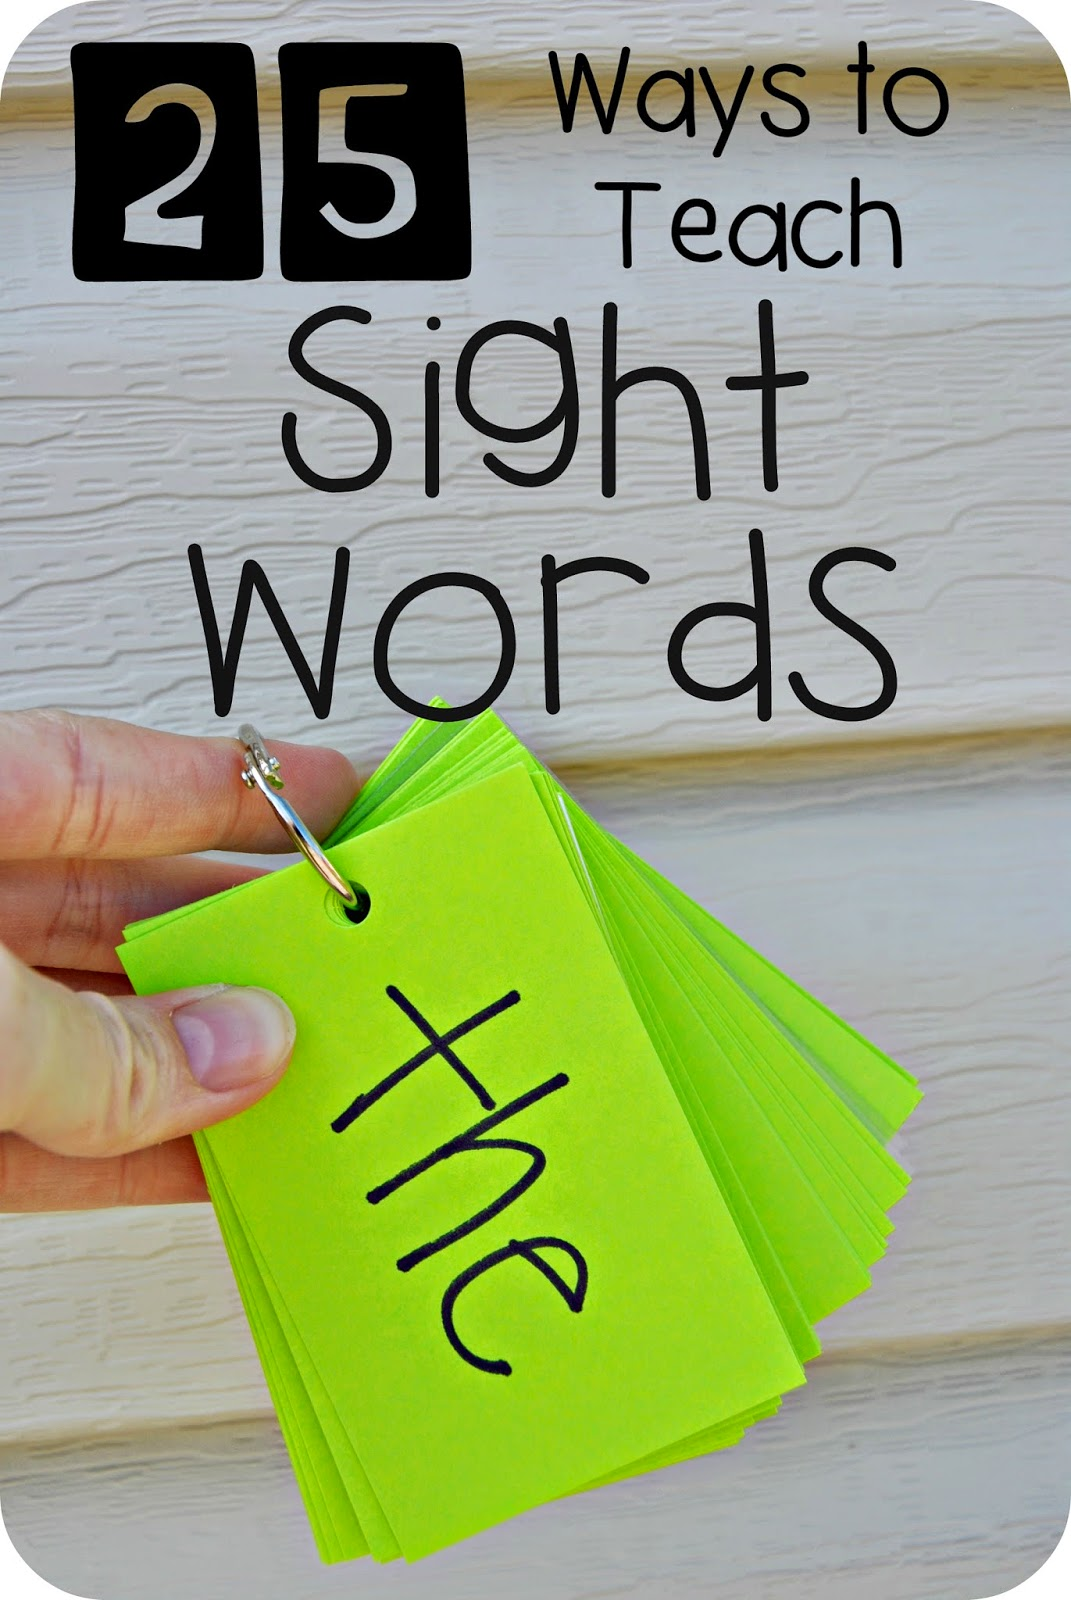 Worksheet How To Learn Sight Words For Kindergarten teaching learning loving 25 ways to teach sight words im going share with you some fun and engaging i mentioned in this post that love wo